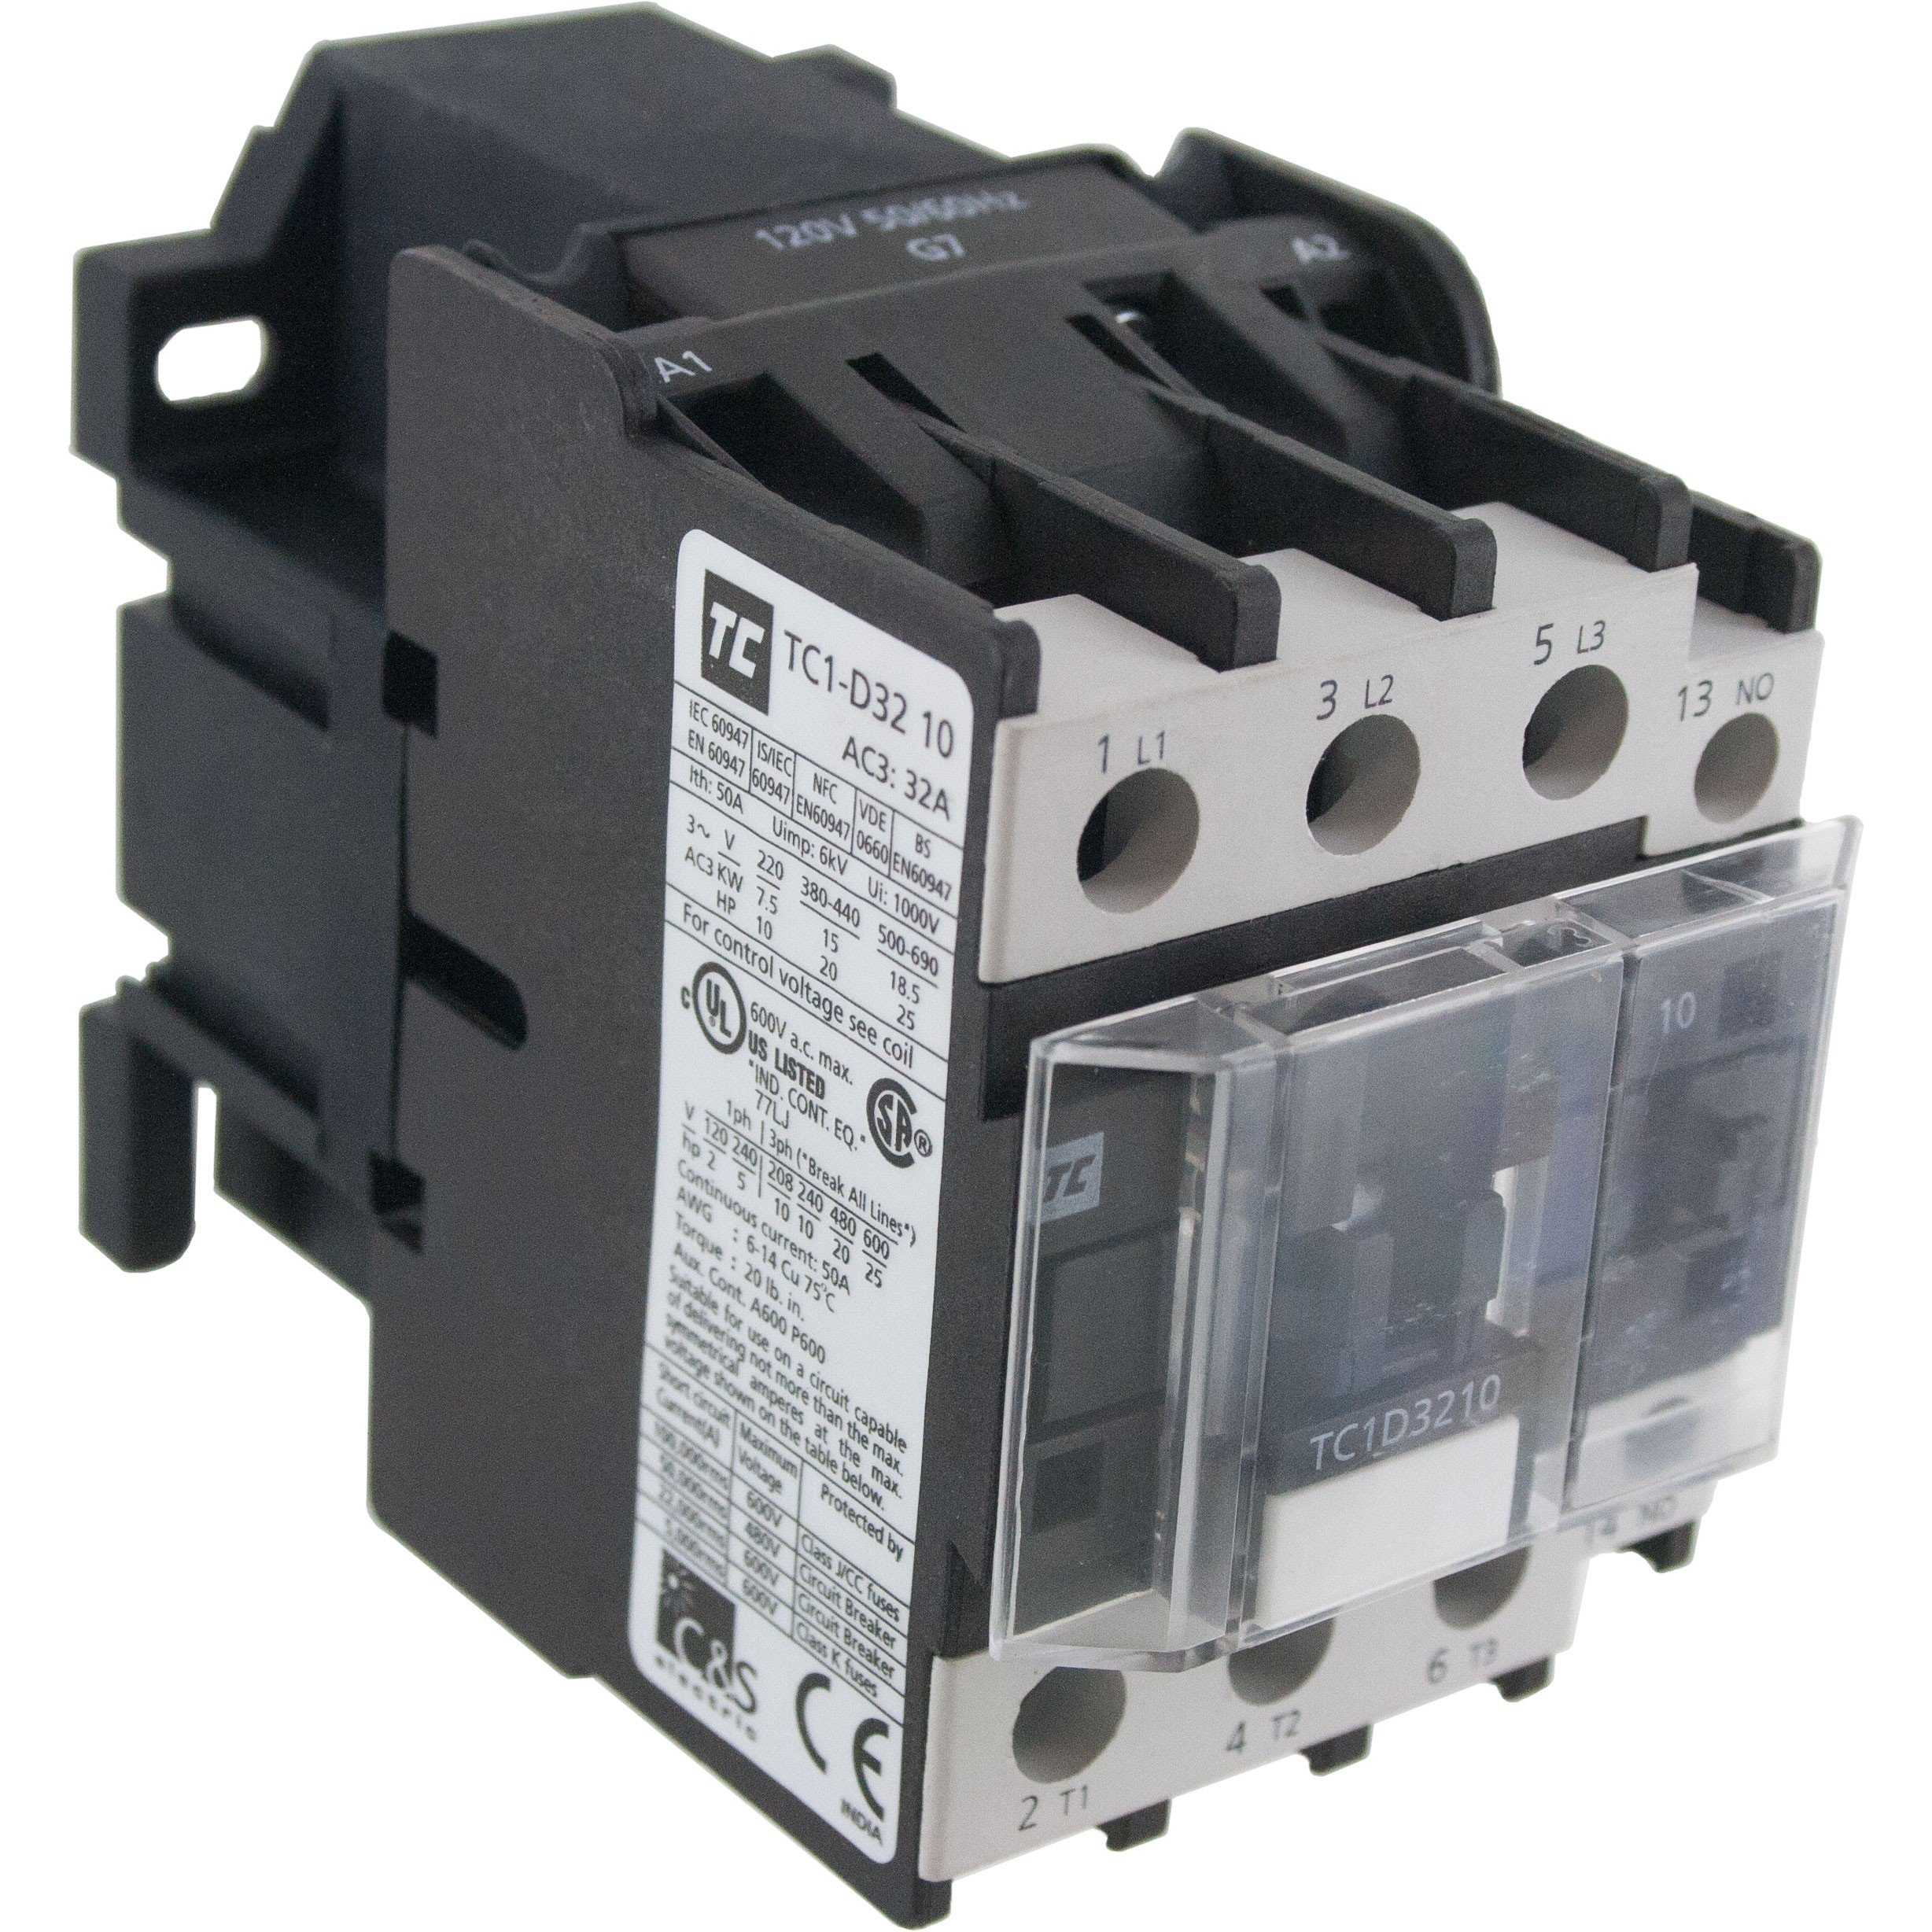 3 Pole Contactor 32 Amp 575 Volt AC Coil Angle